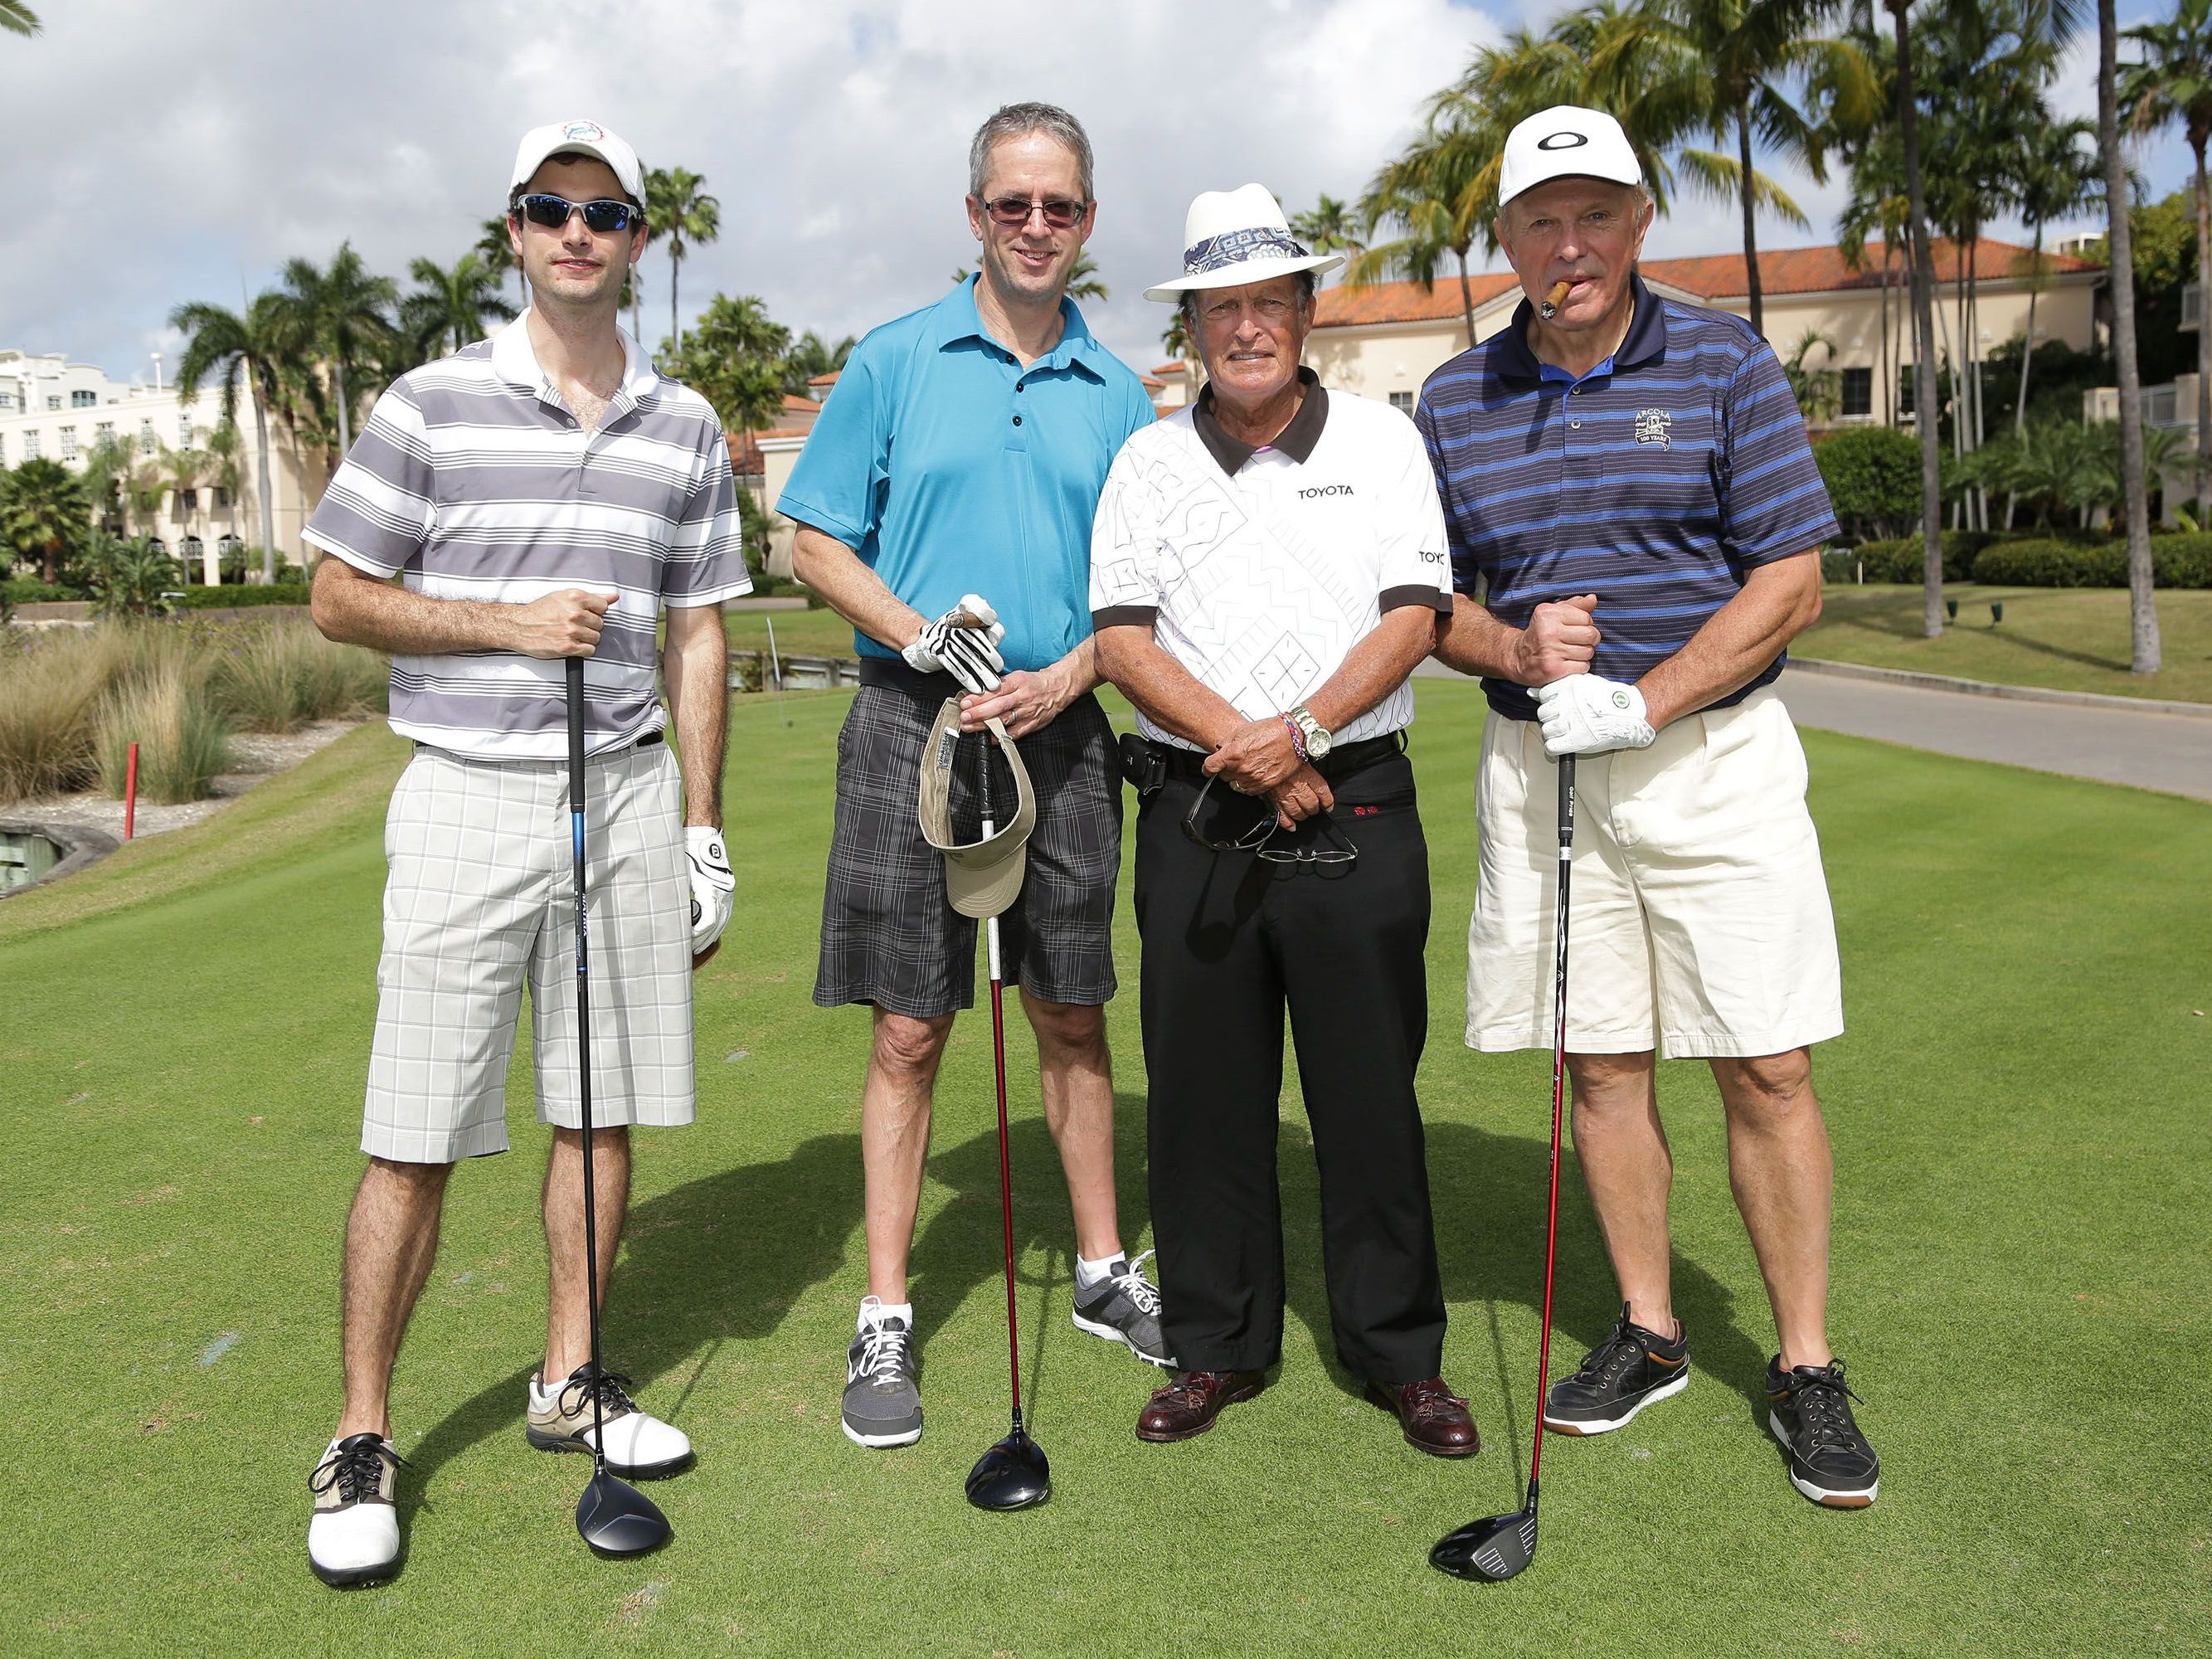 2fcb7d67 Golf Tournament Formats, Side Games and Golf Bets